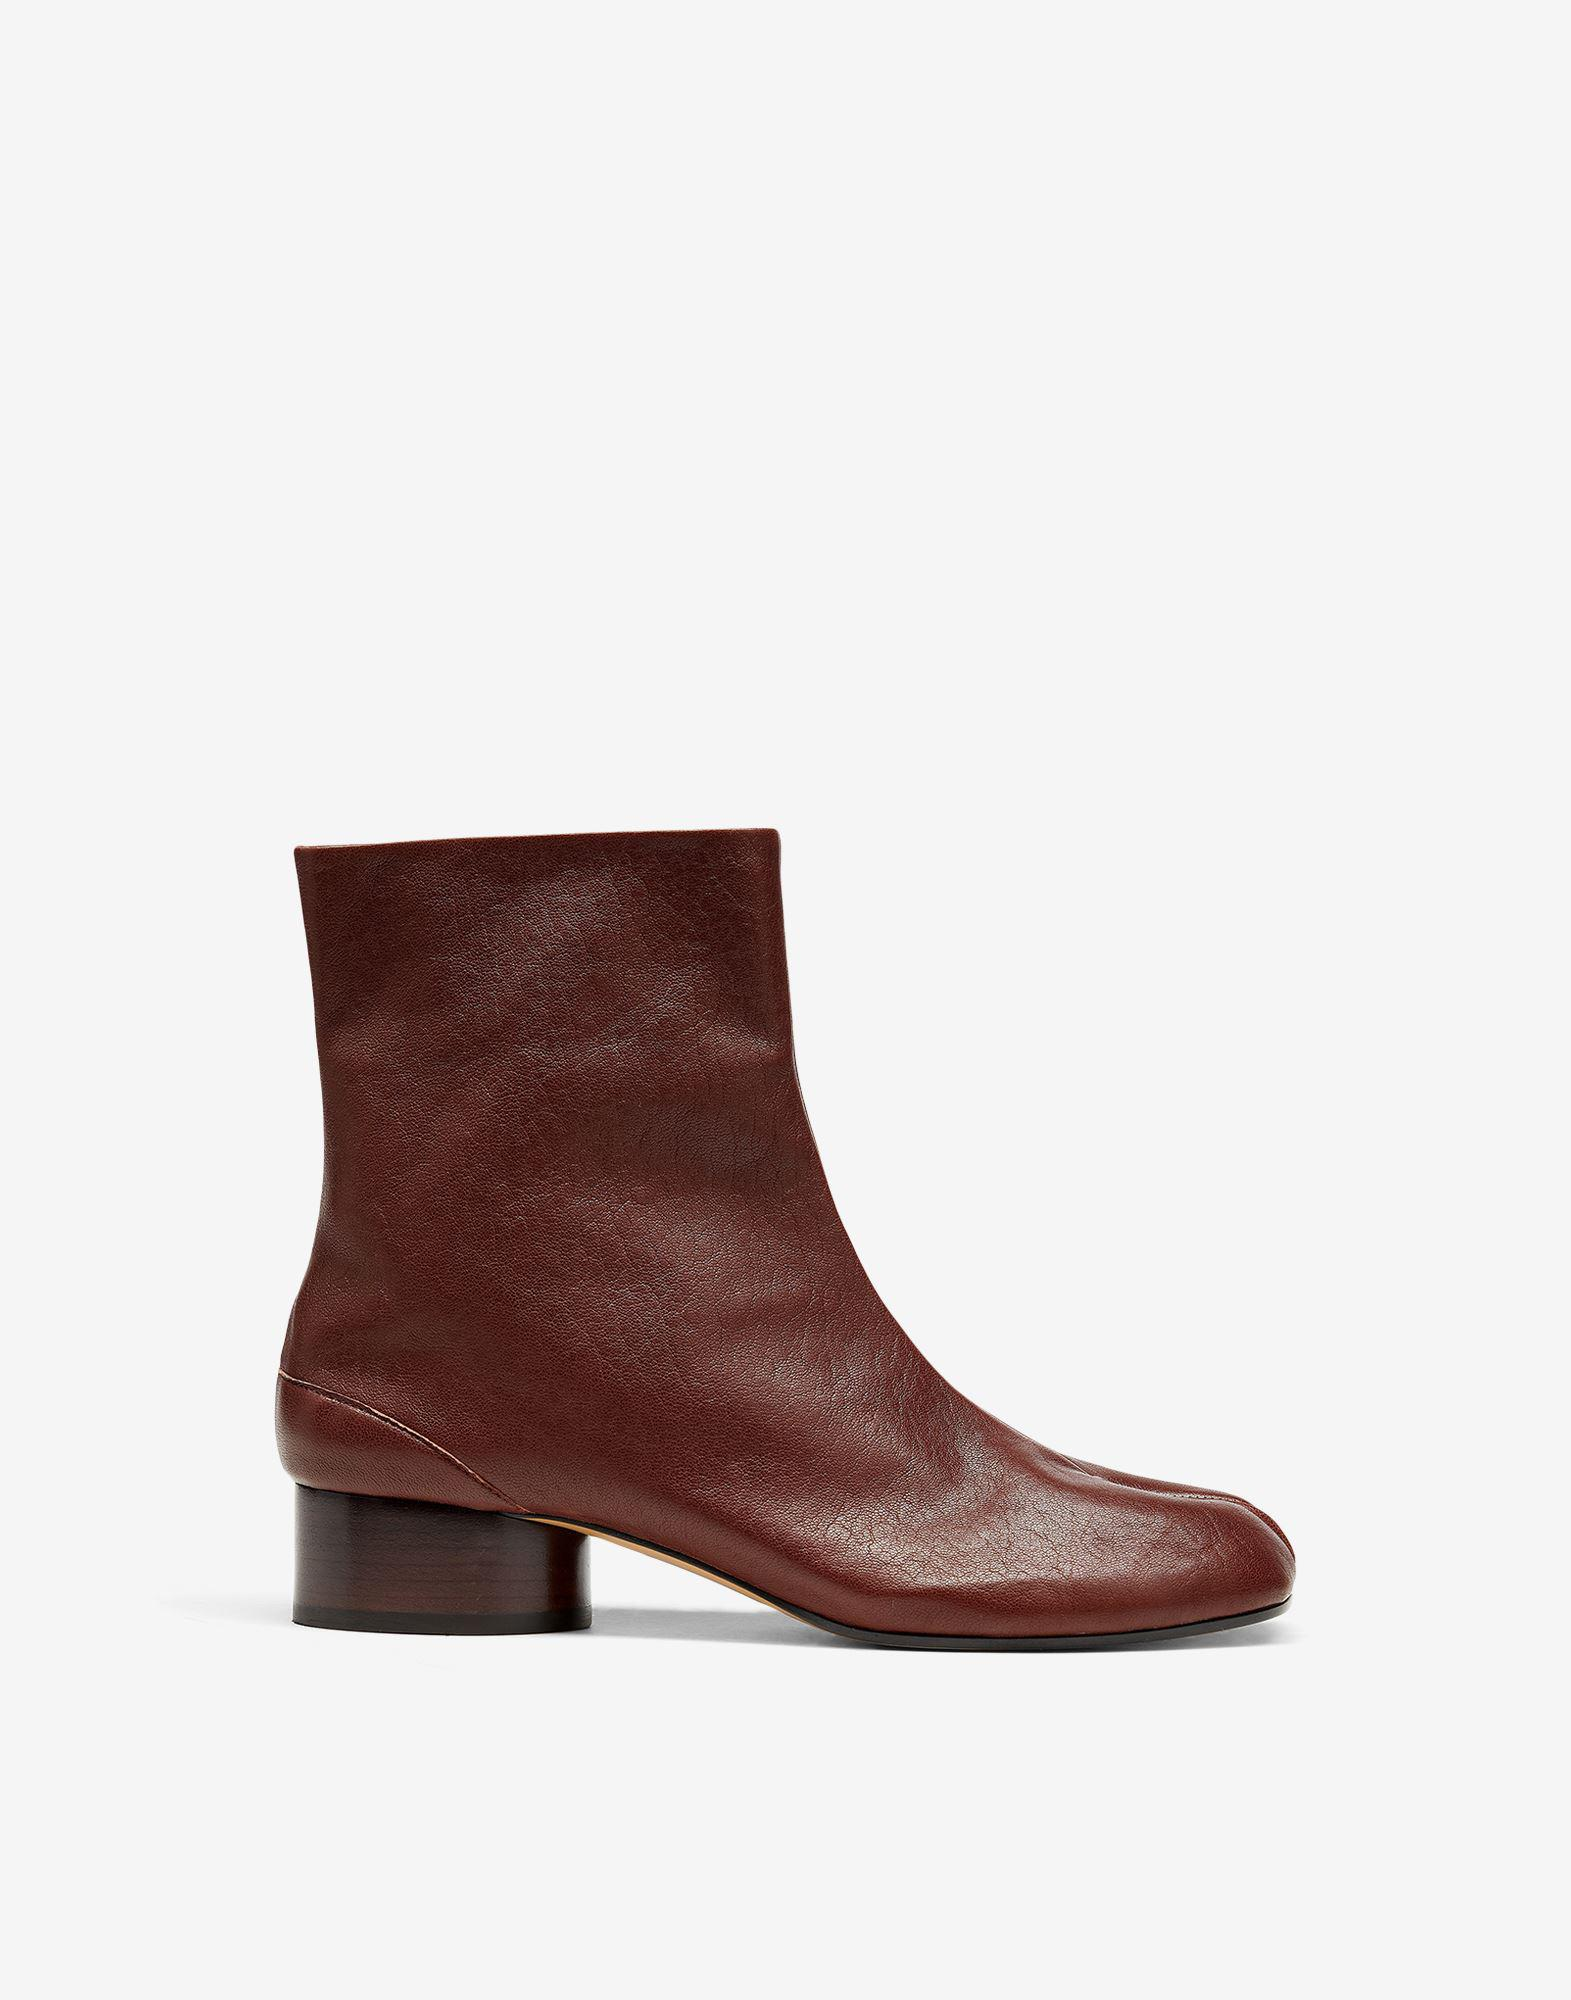 Tabi vintage leather ankle boots